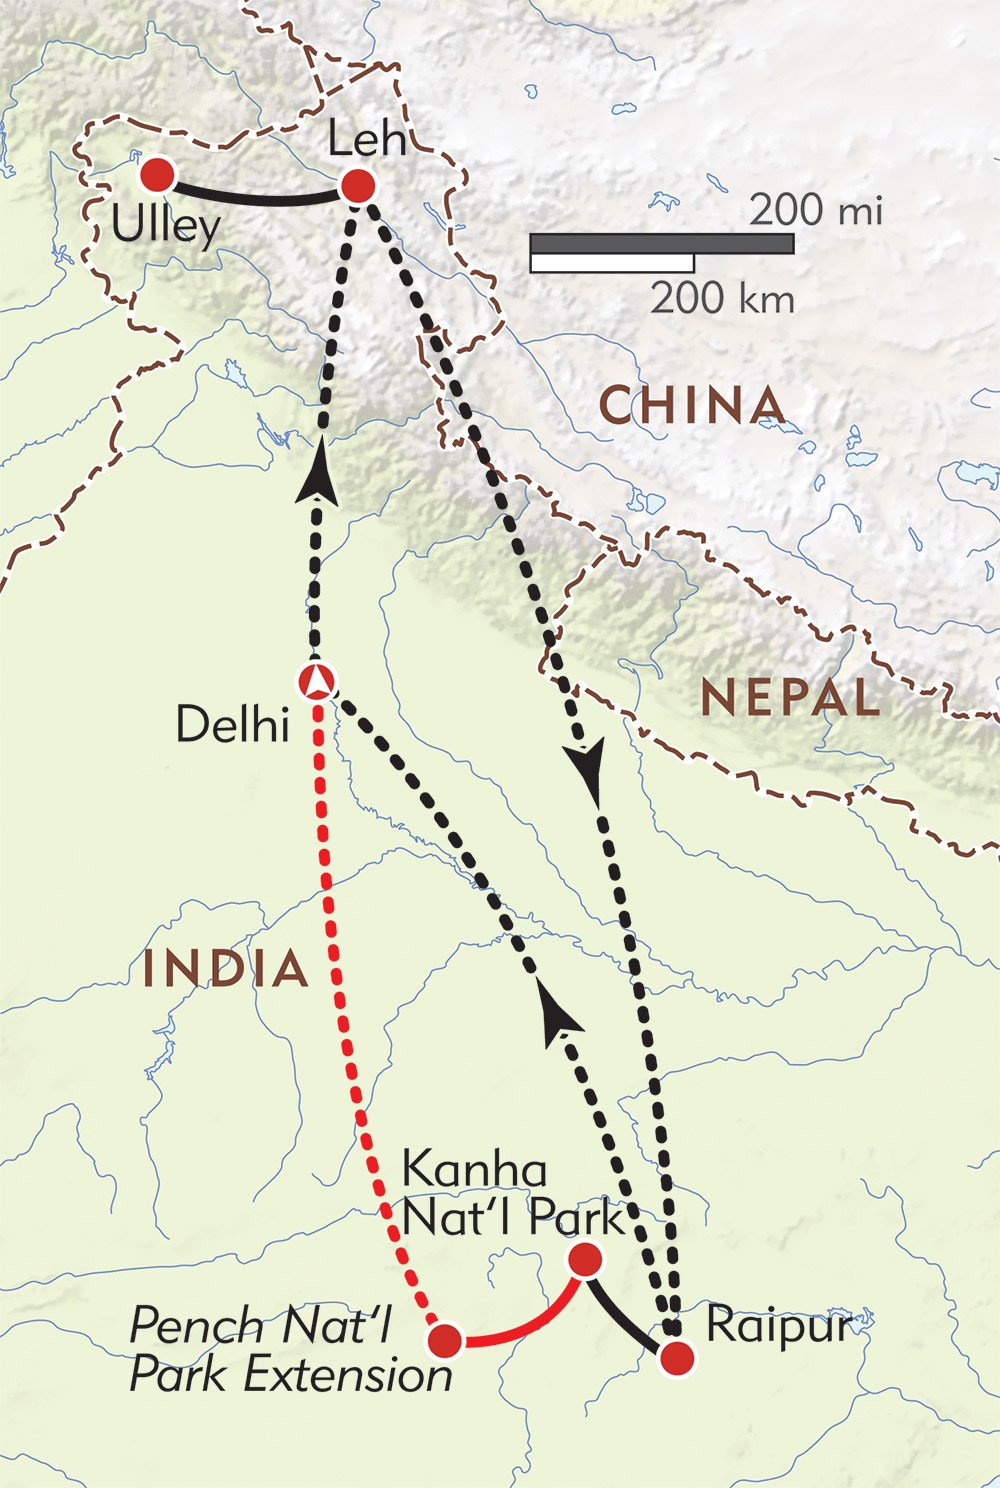 Snow Leopards and Tigers of India route-map